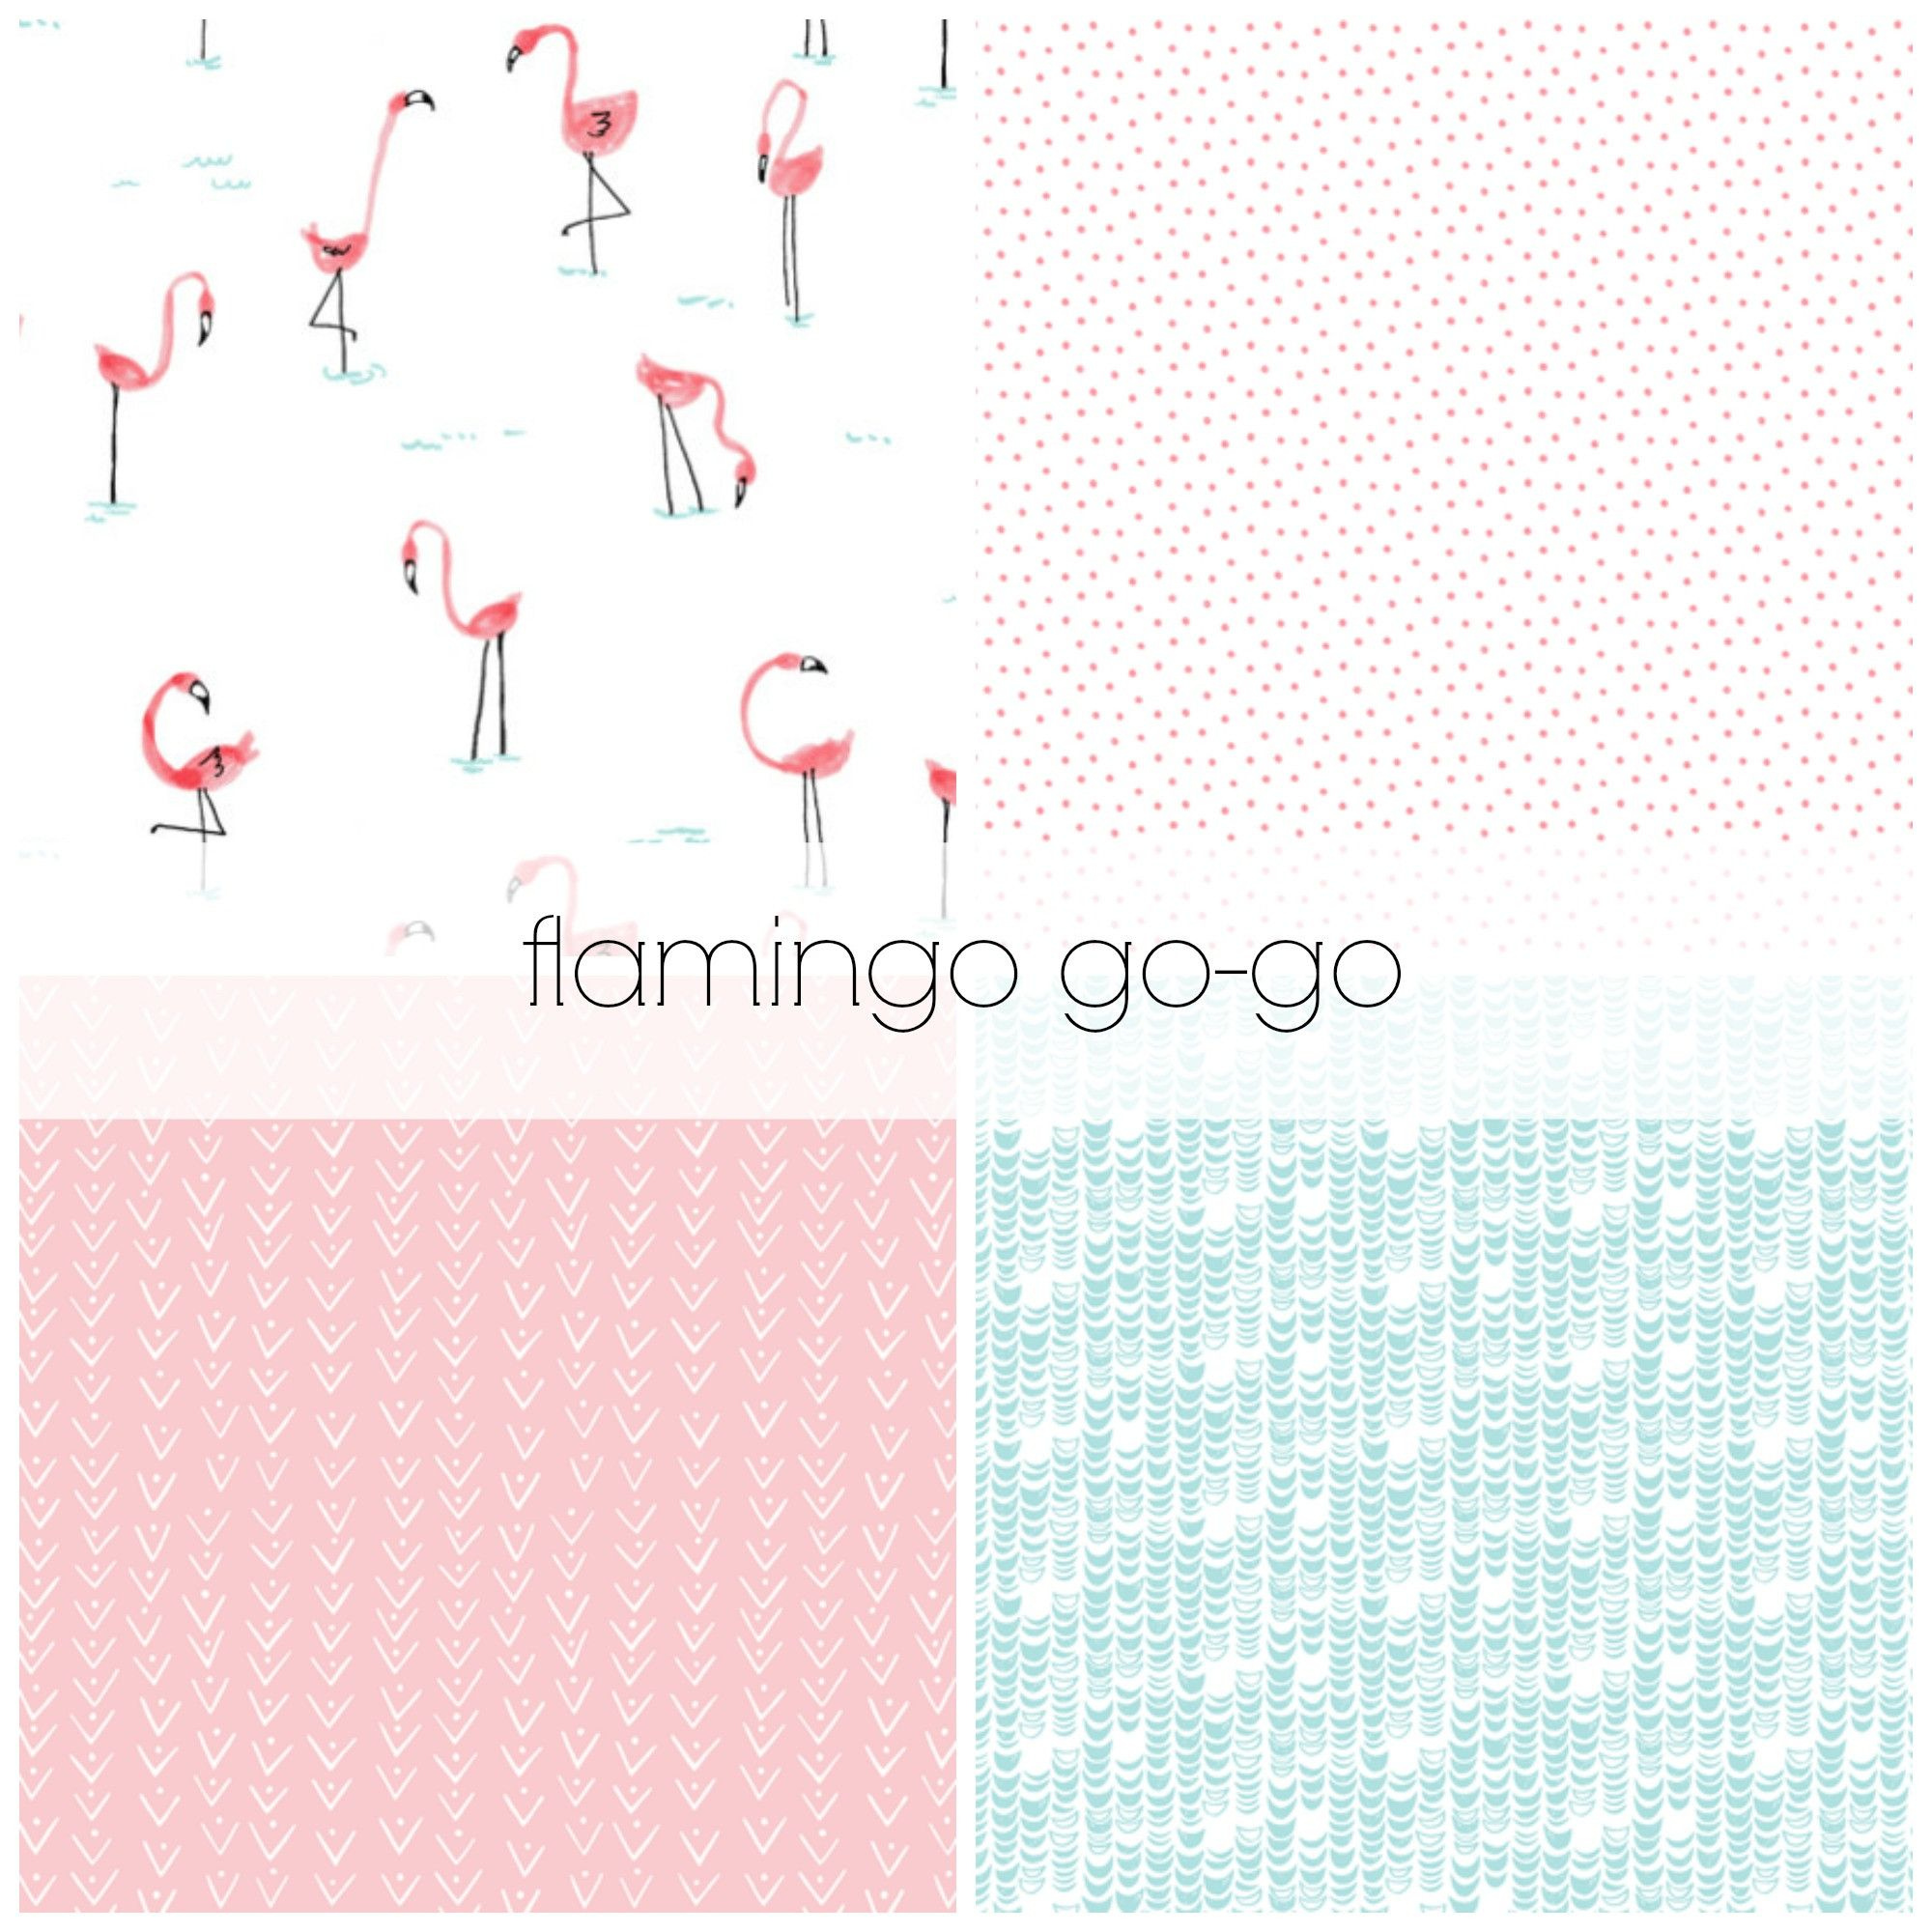 Gocrib adventure crib for sale - Flamingo Go Go Crib Bedding Set